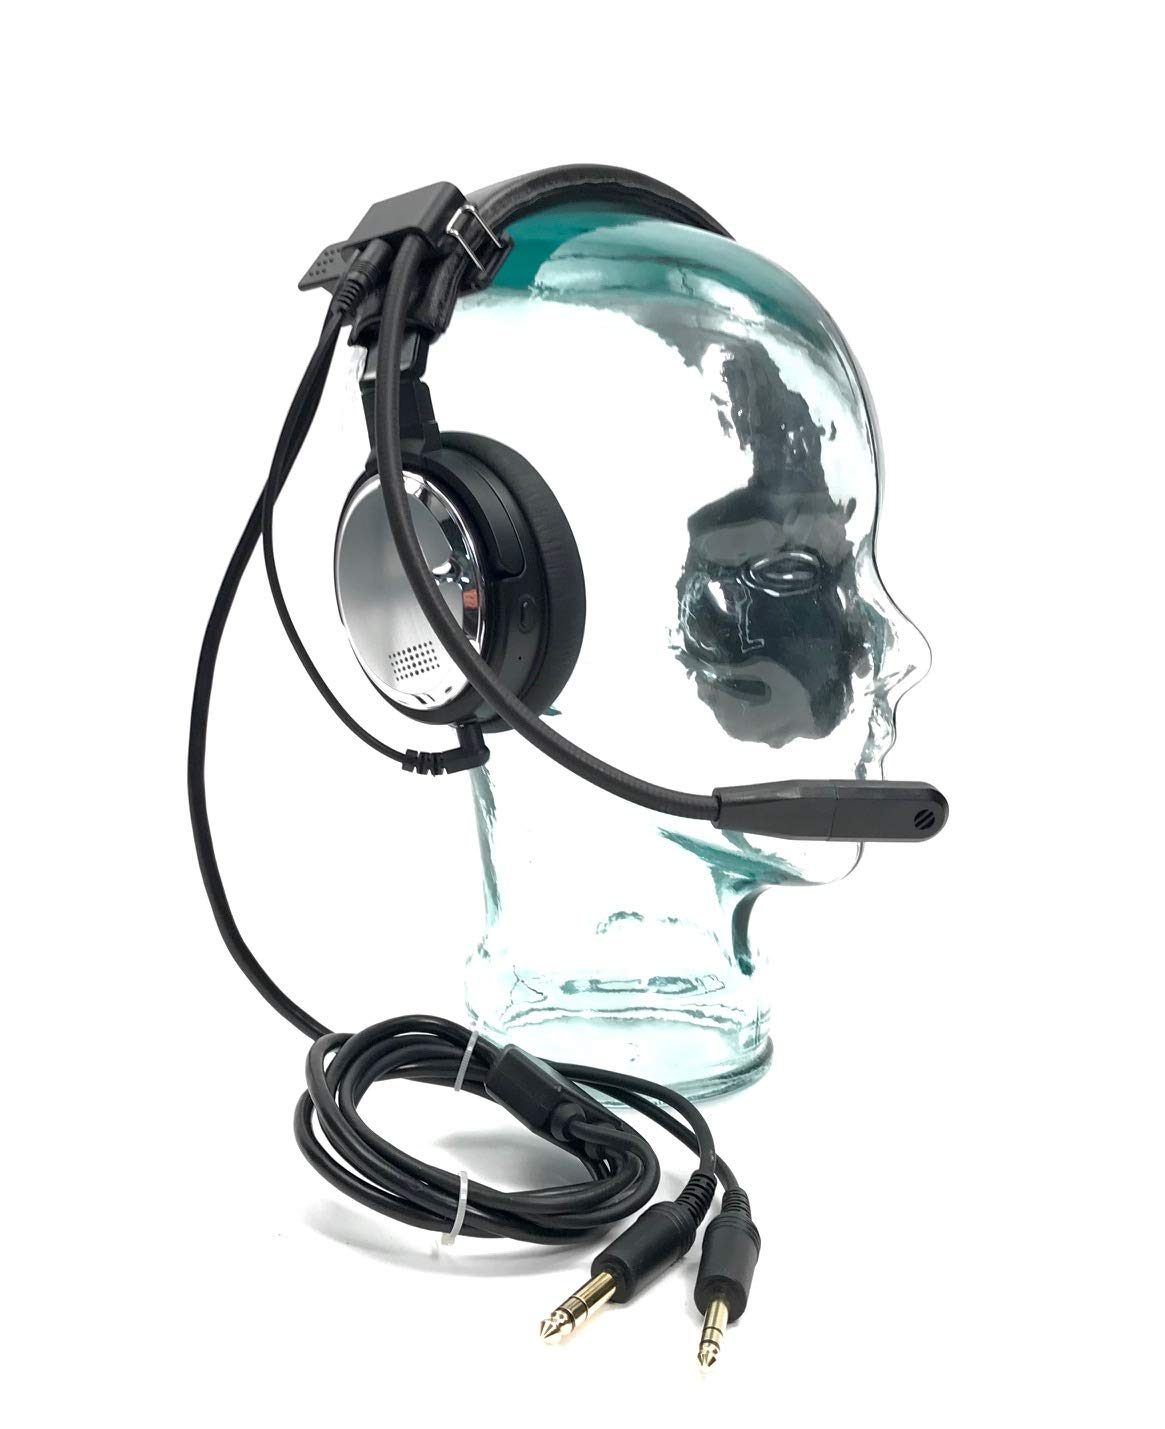 EarHart Pilot Headset ANR ANC Bluetooth Premium Aviation Headphones Active Noise Reduction MP3 Input Airplane, Helicopter